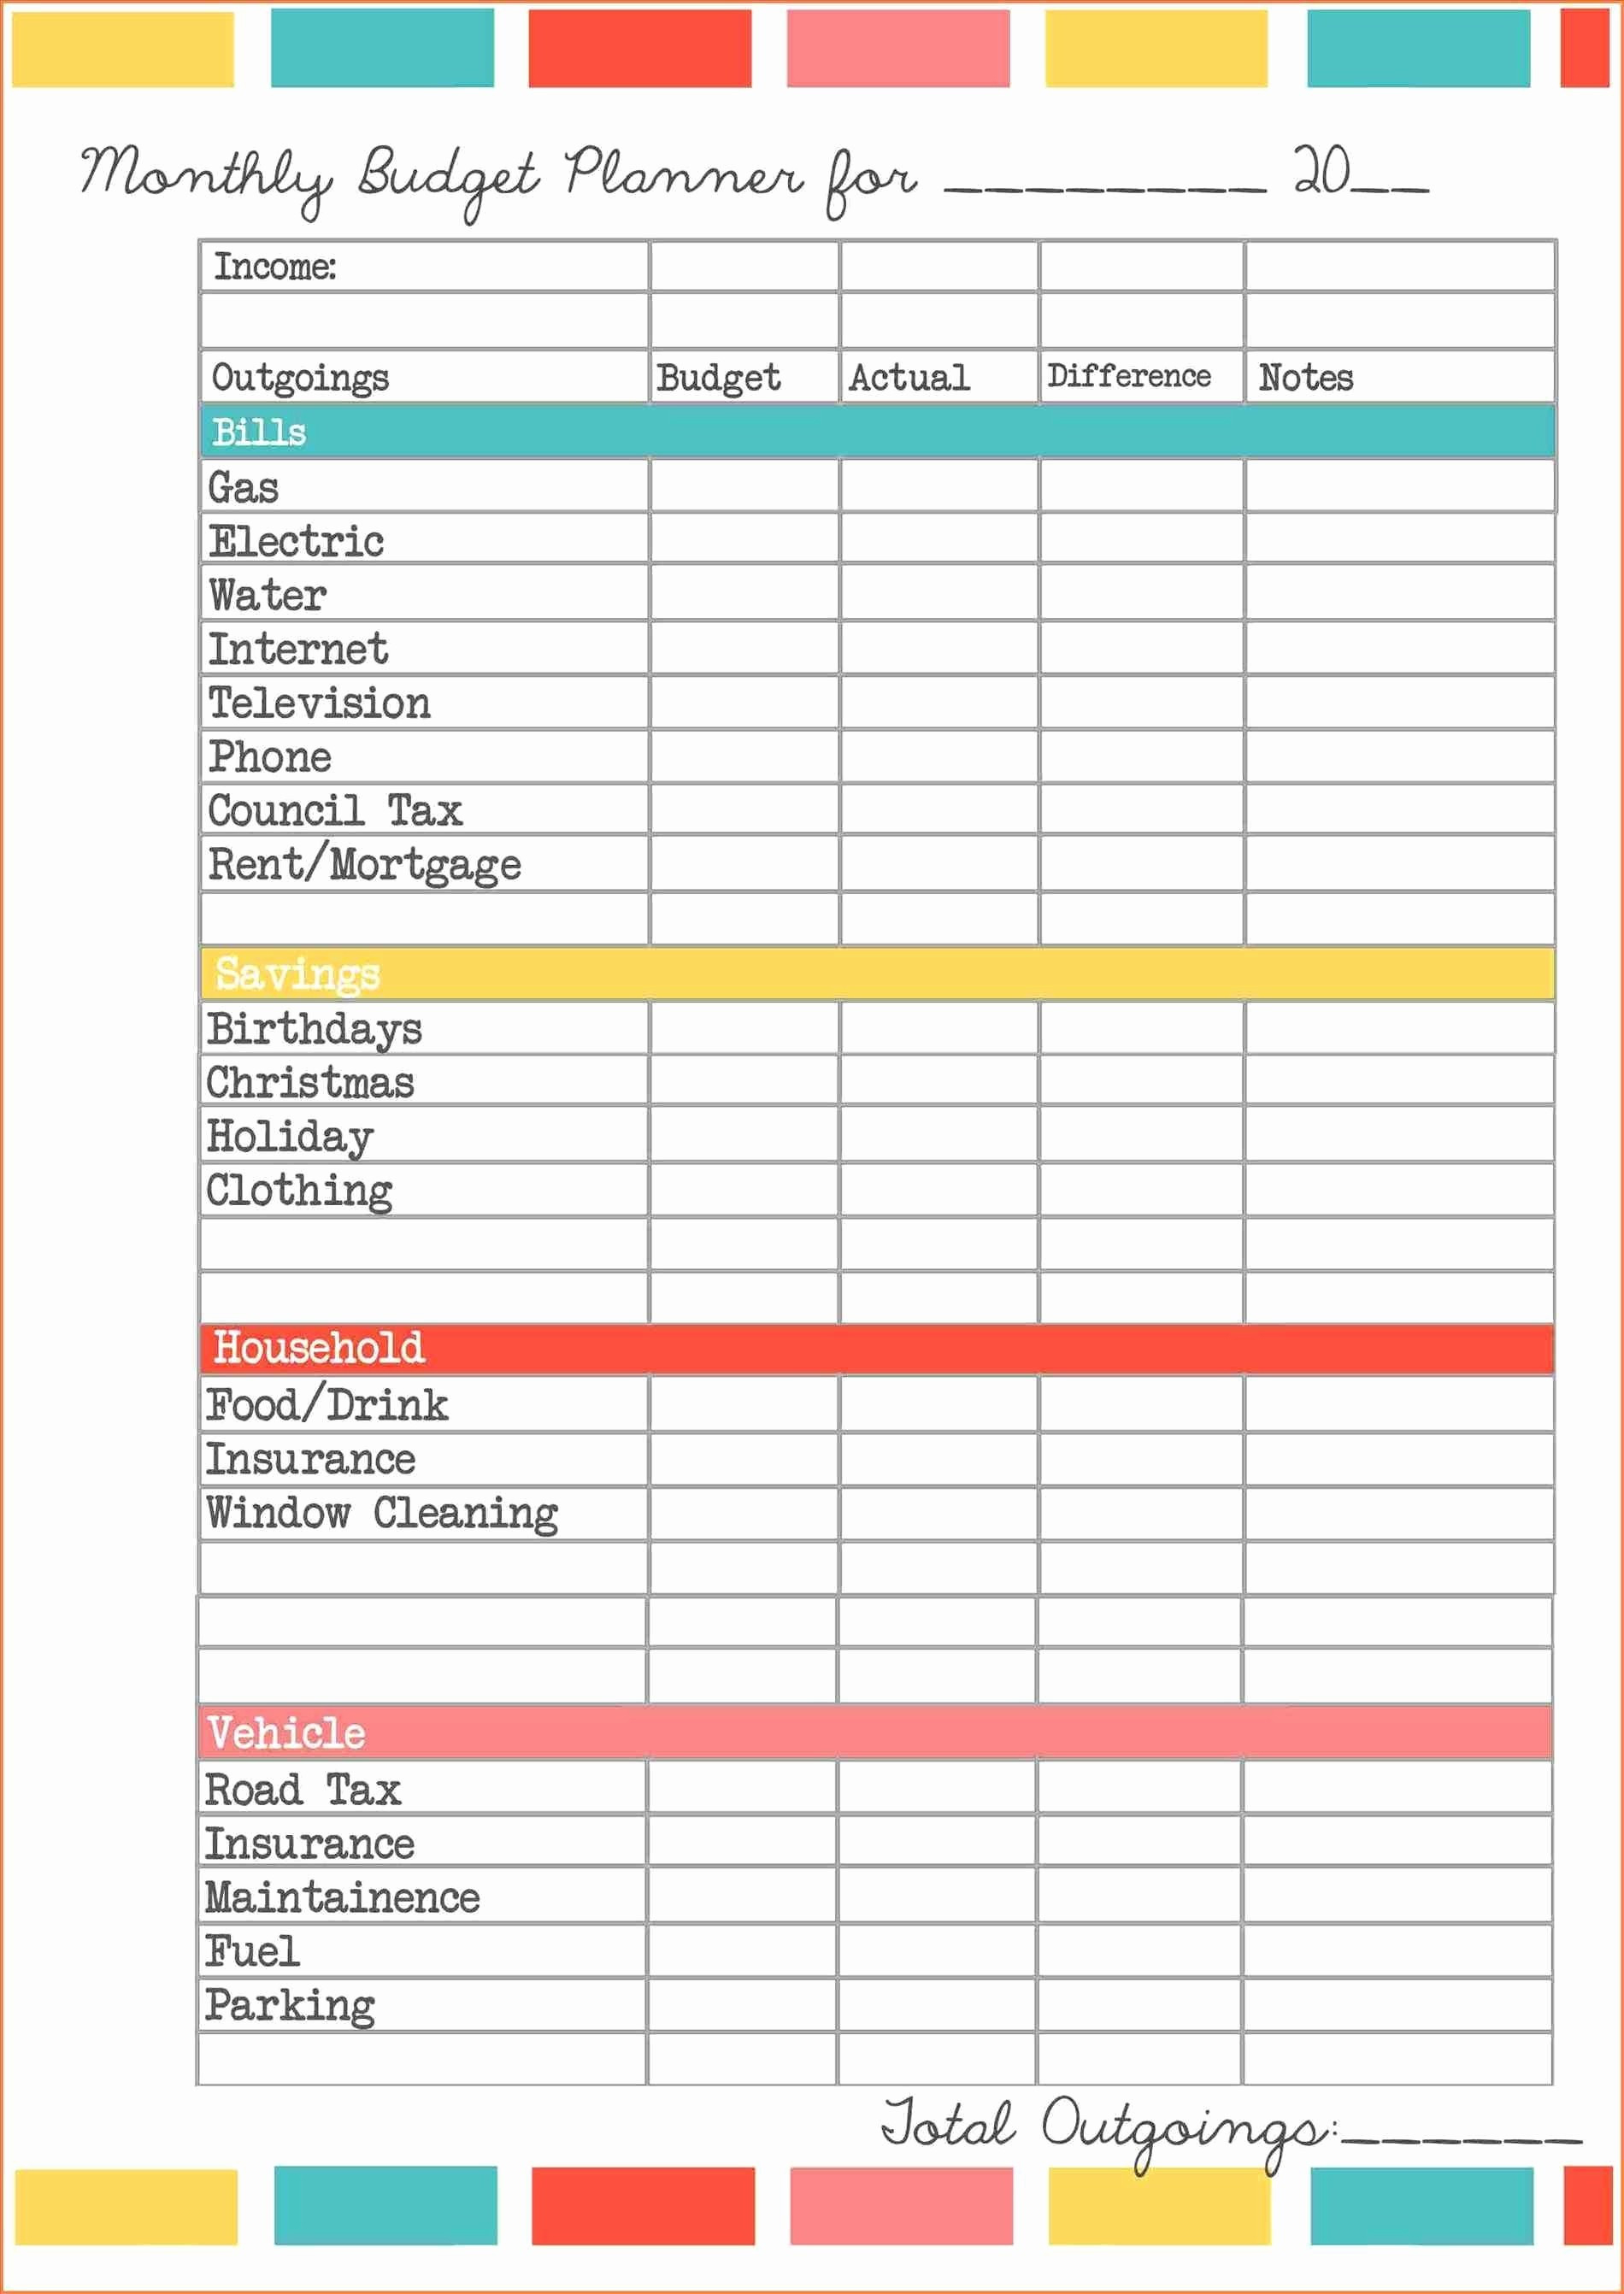 Accounting Spreadsheet Examples Intended For Accounting Spreadsheet Templates For Small Business Free